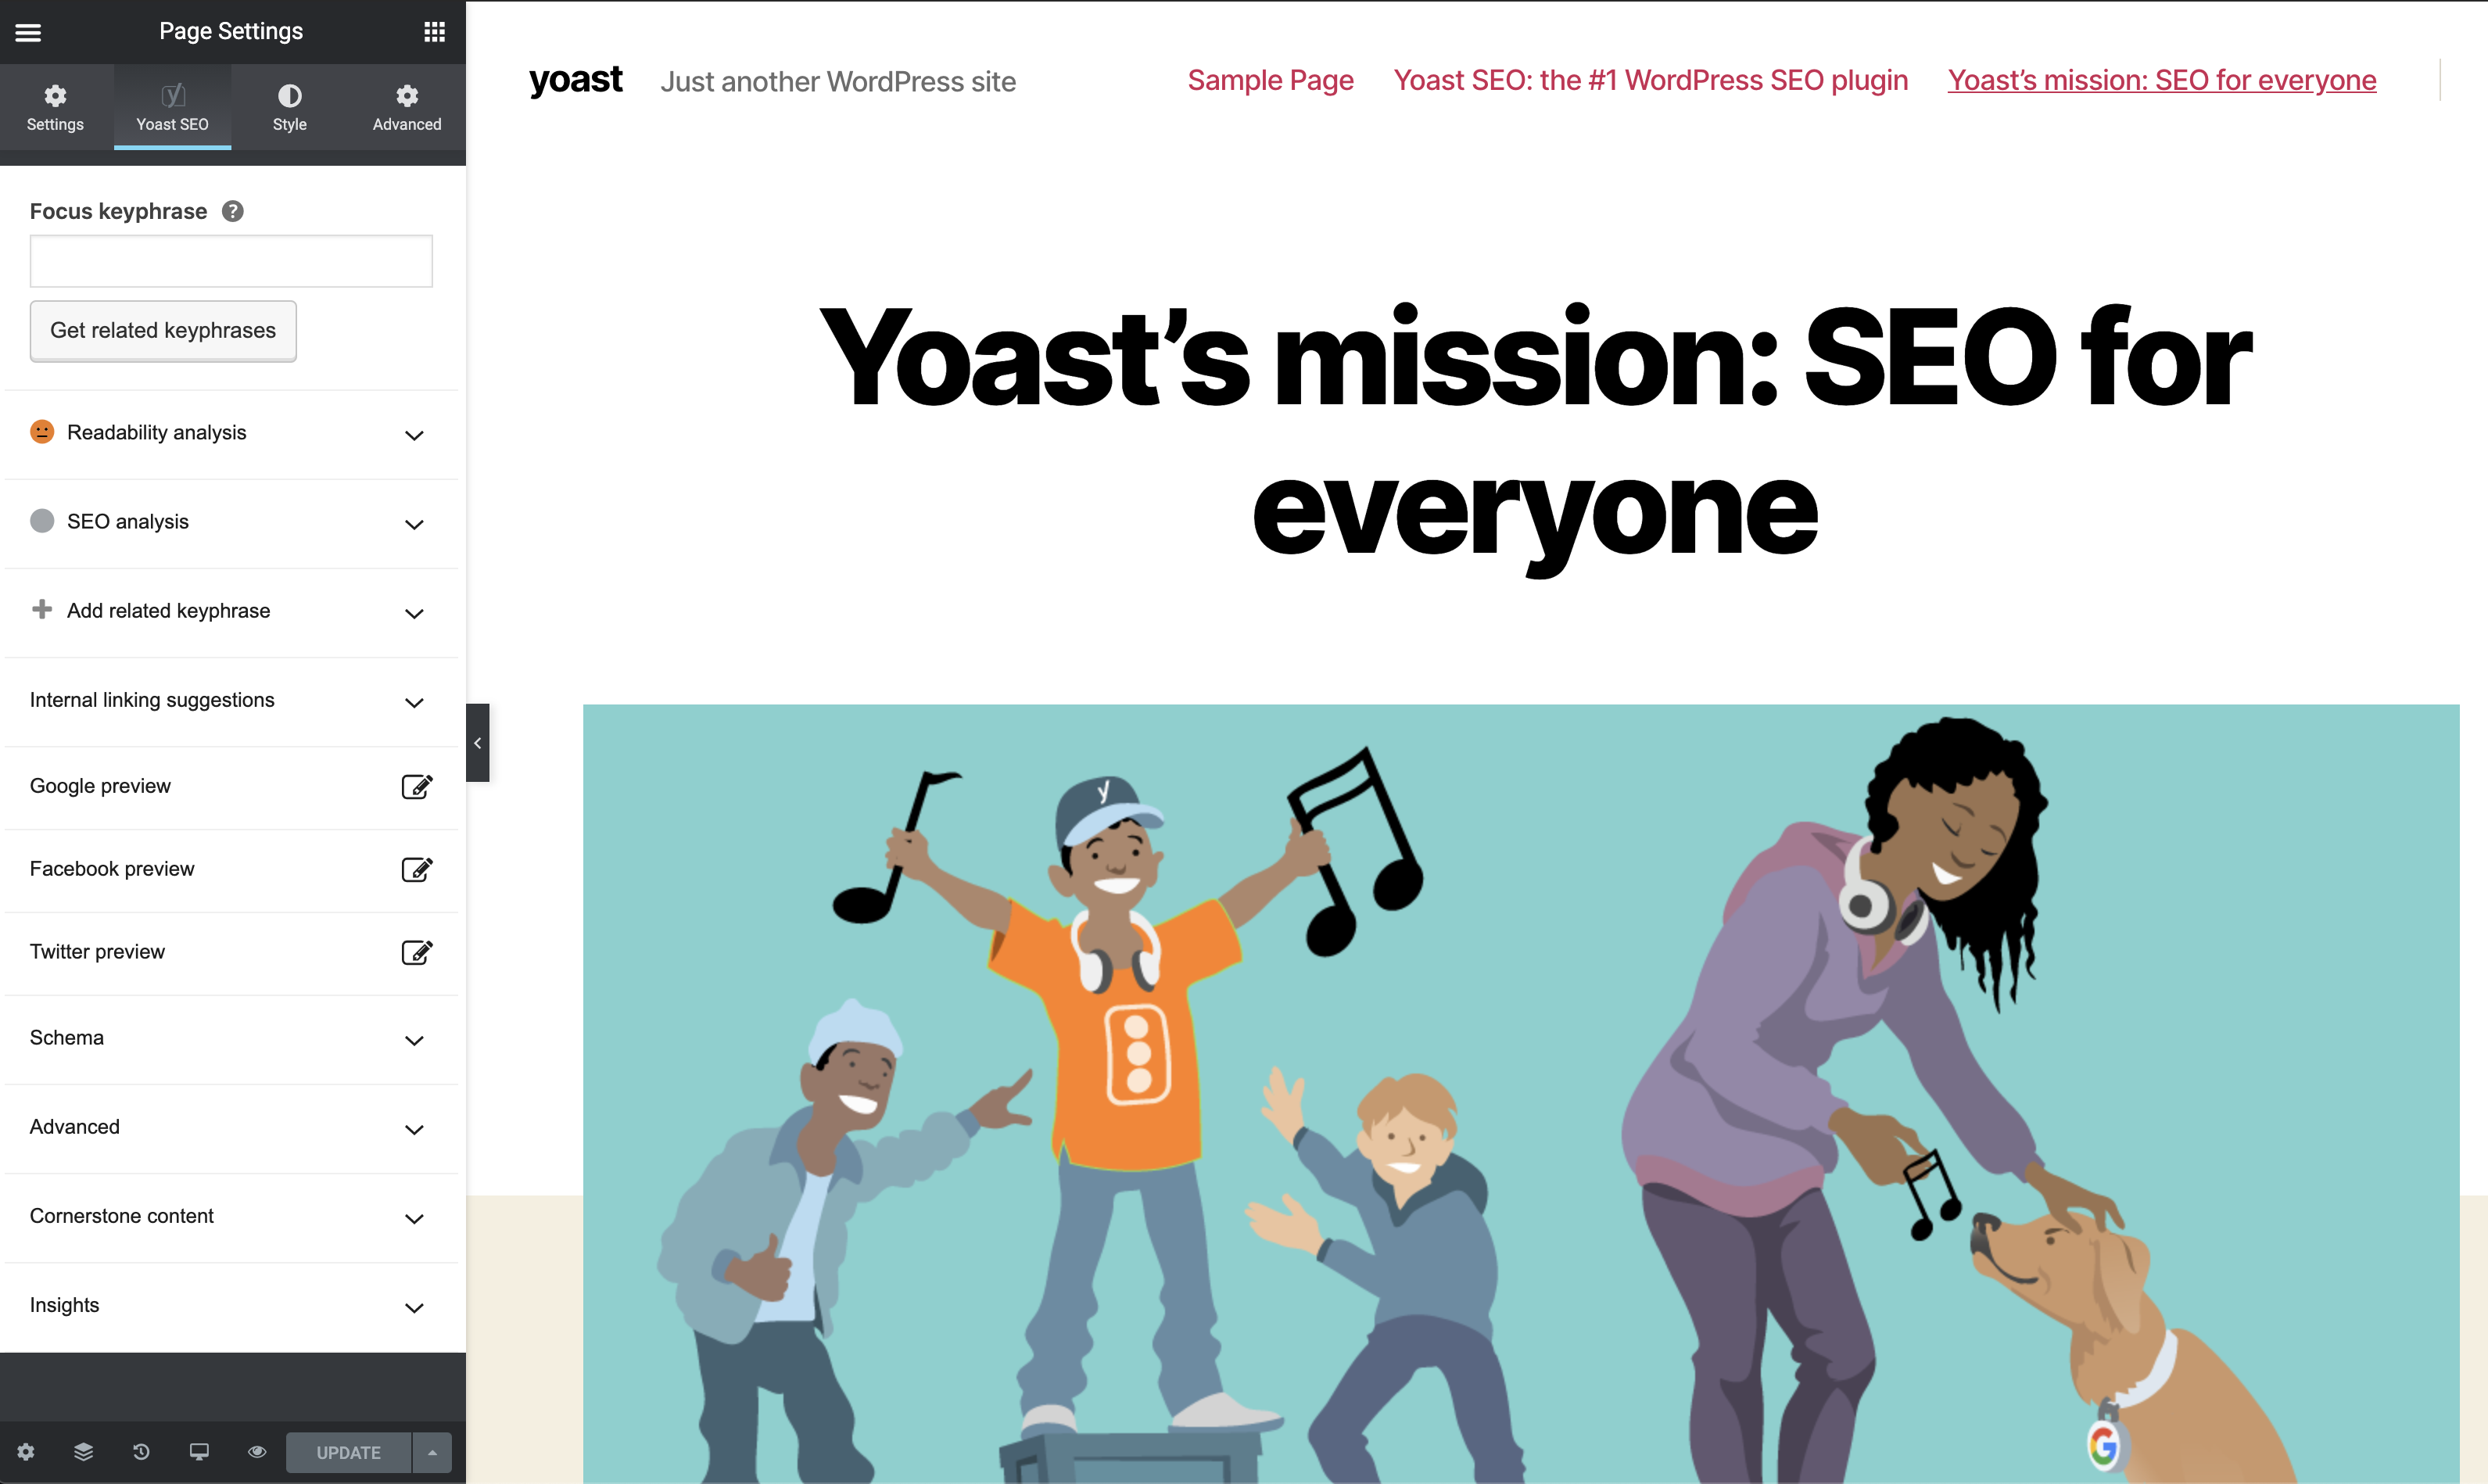 A screenshot of the Yoast SEO sidebar in Elementor